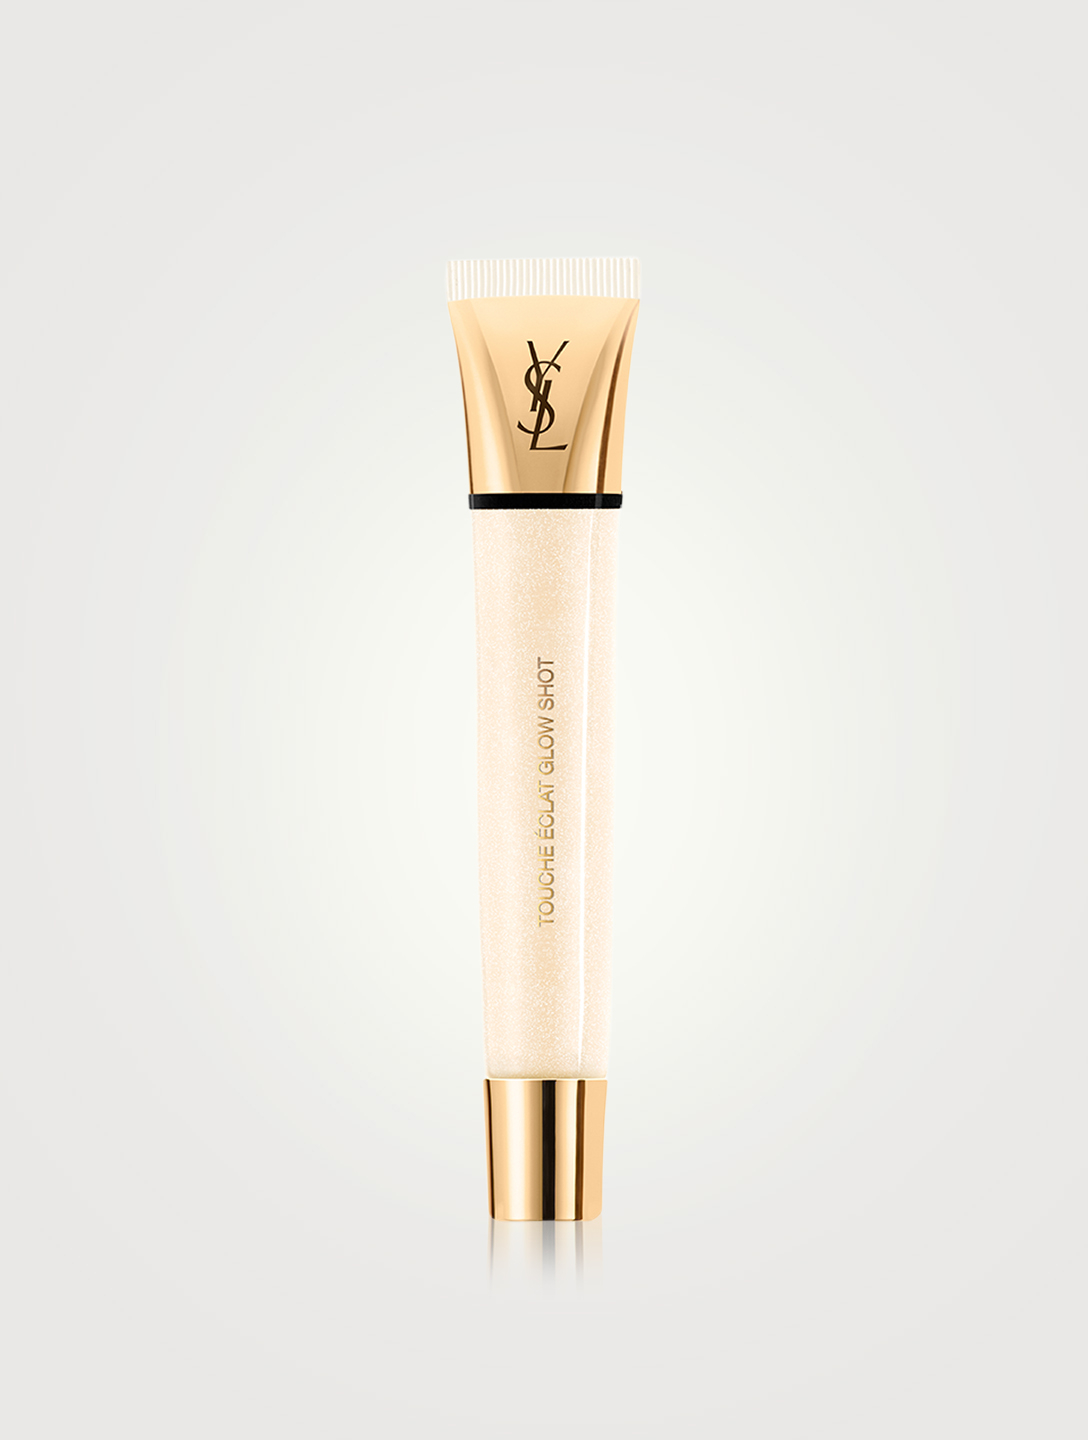 YVES SAINT LAURENT Touche Éclat Glow Shot Beauty Neutral